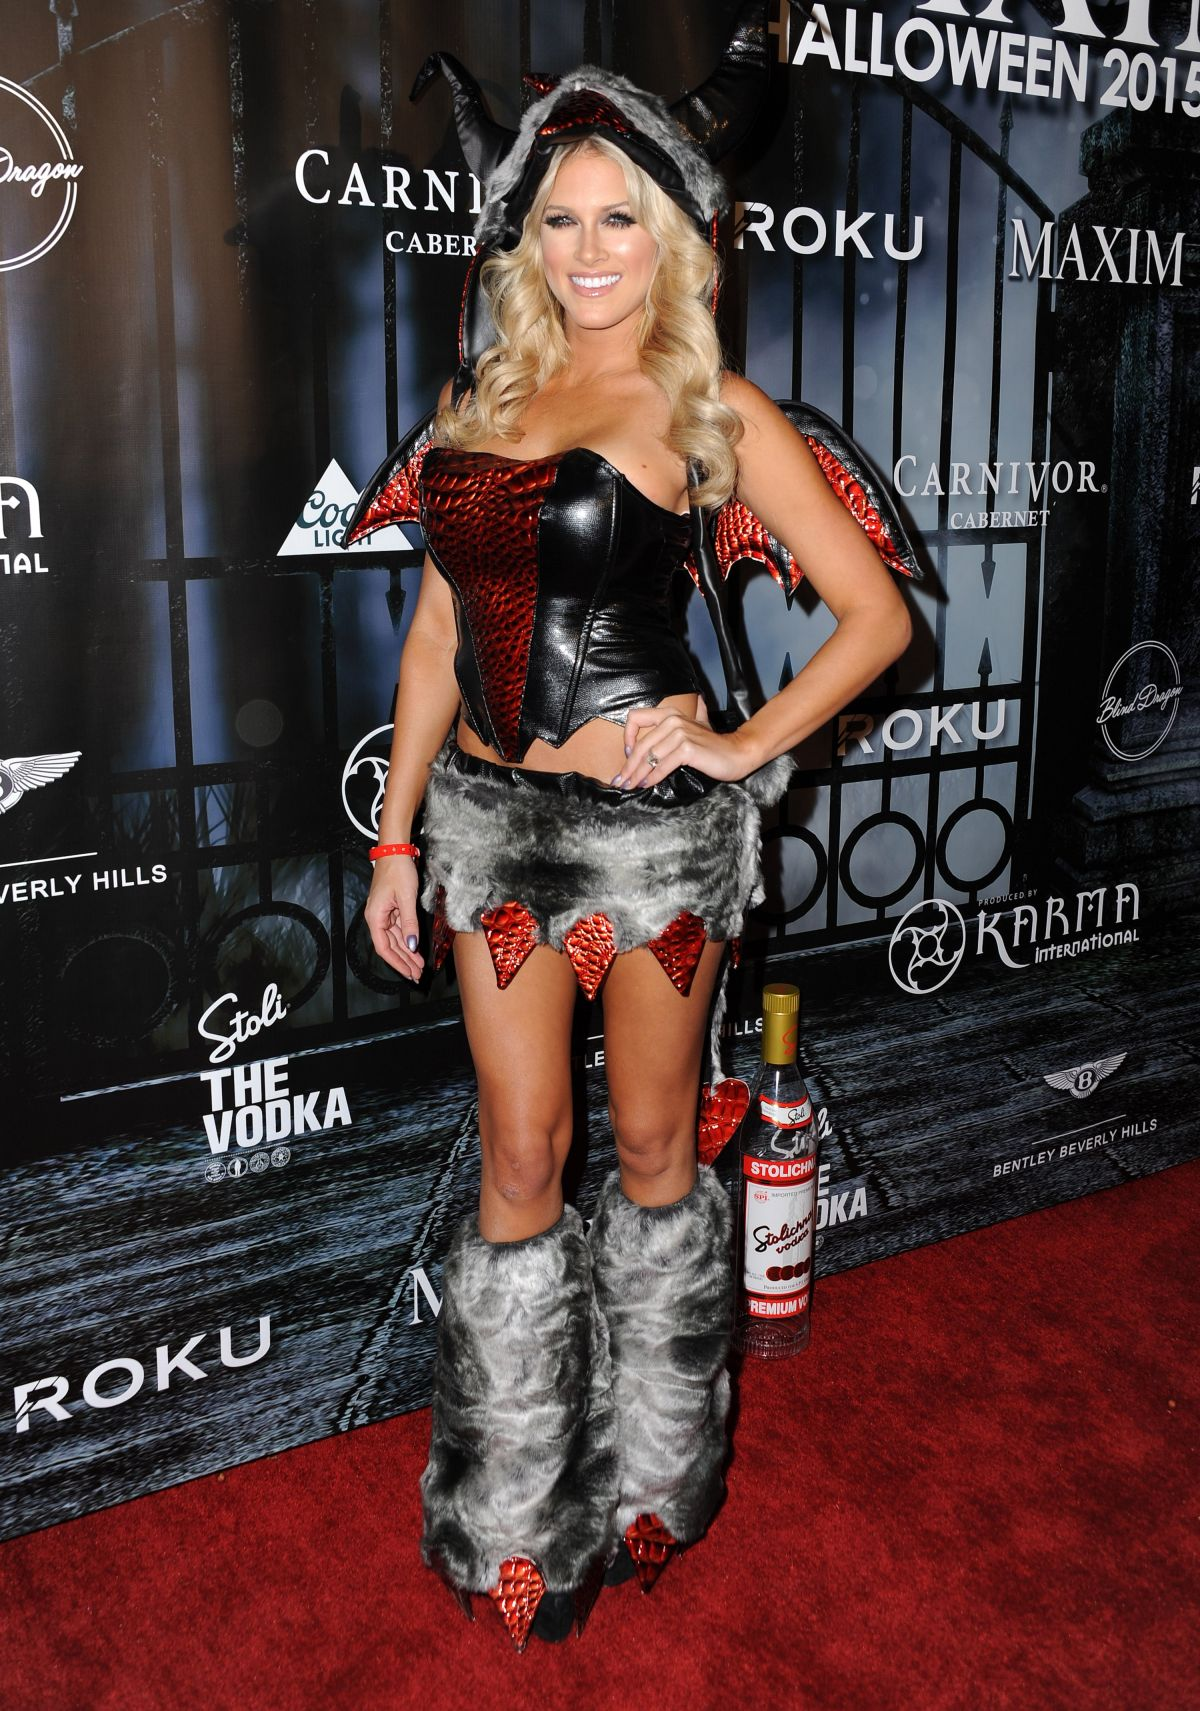 BARBIE BLANK at Maxim Magazine's Official Halloween Party in Beverly Hills 10/24/2015